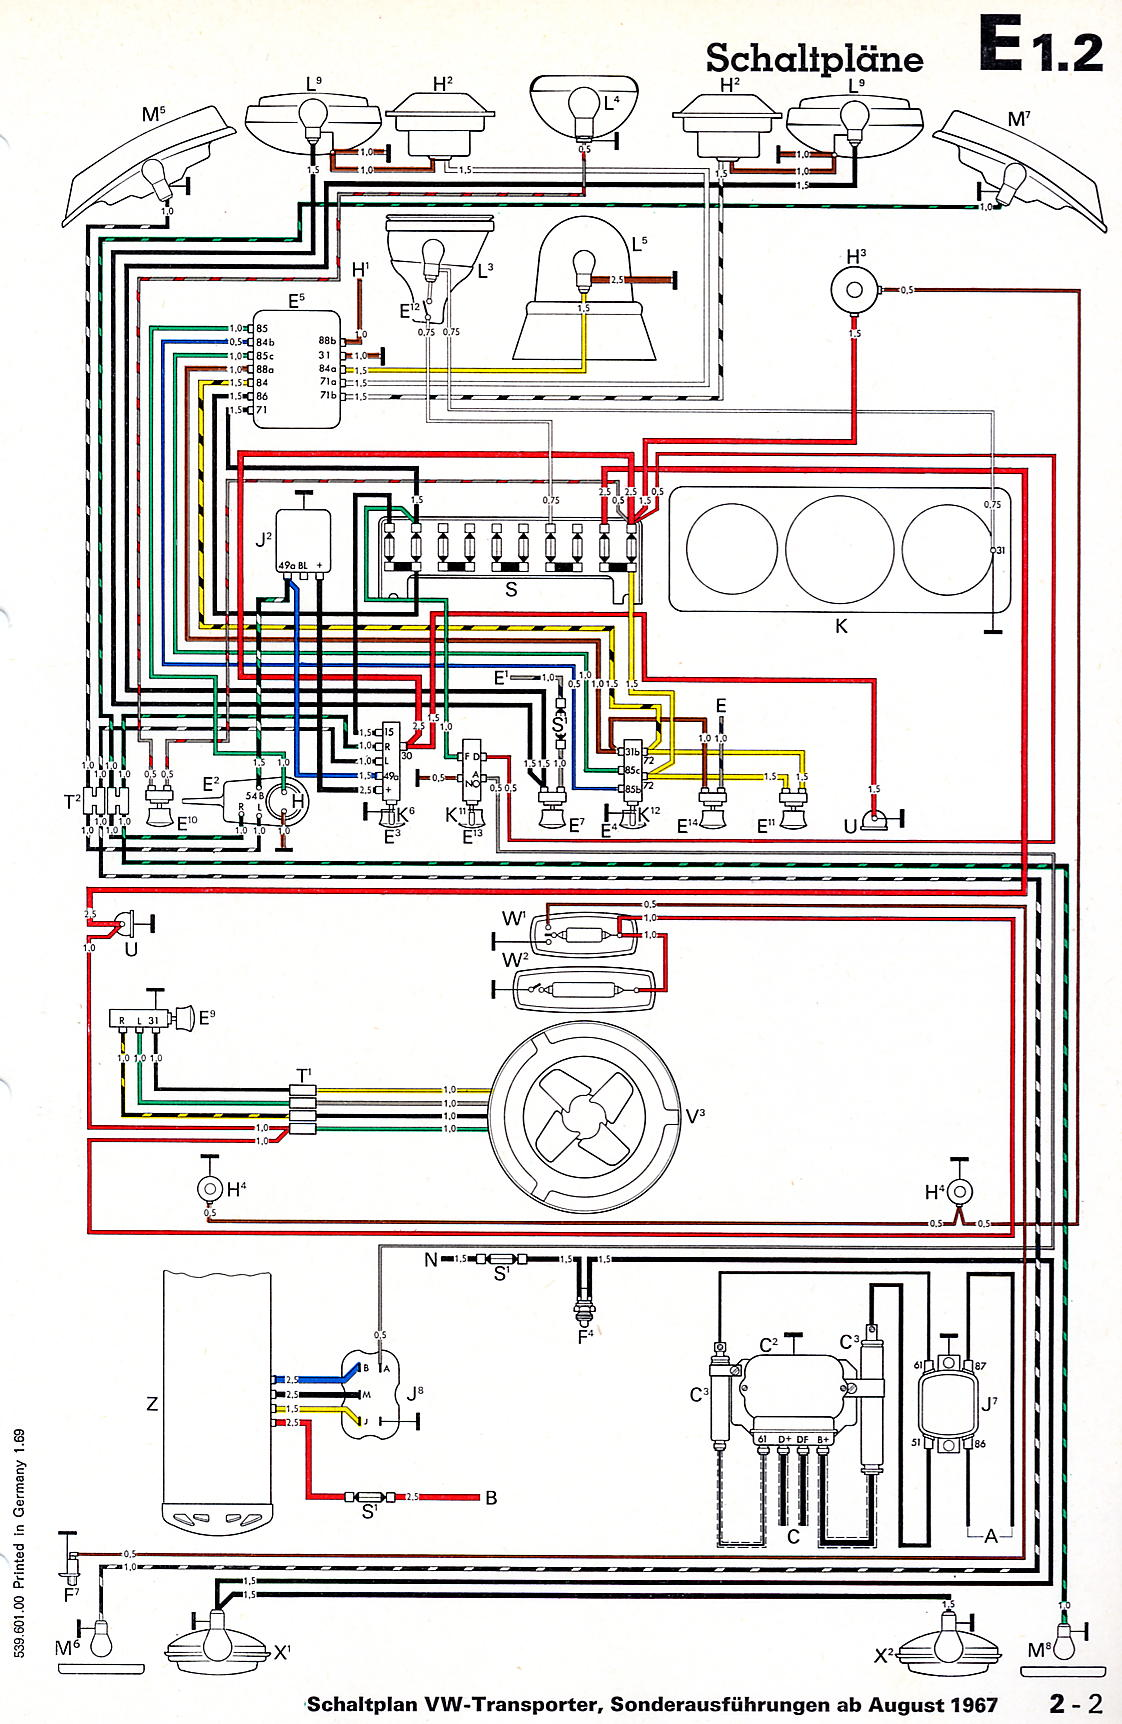 volkswagen alternator wiring diagram images wiring diagram vw beetle wiring diagram electrical wiring diagram